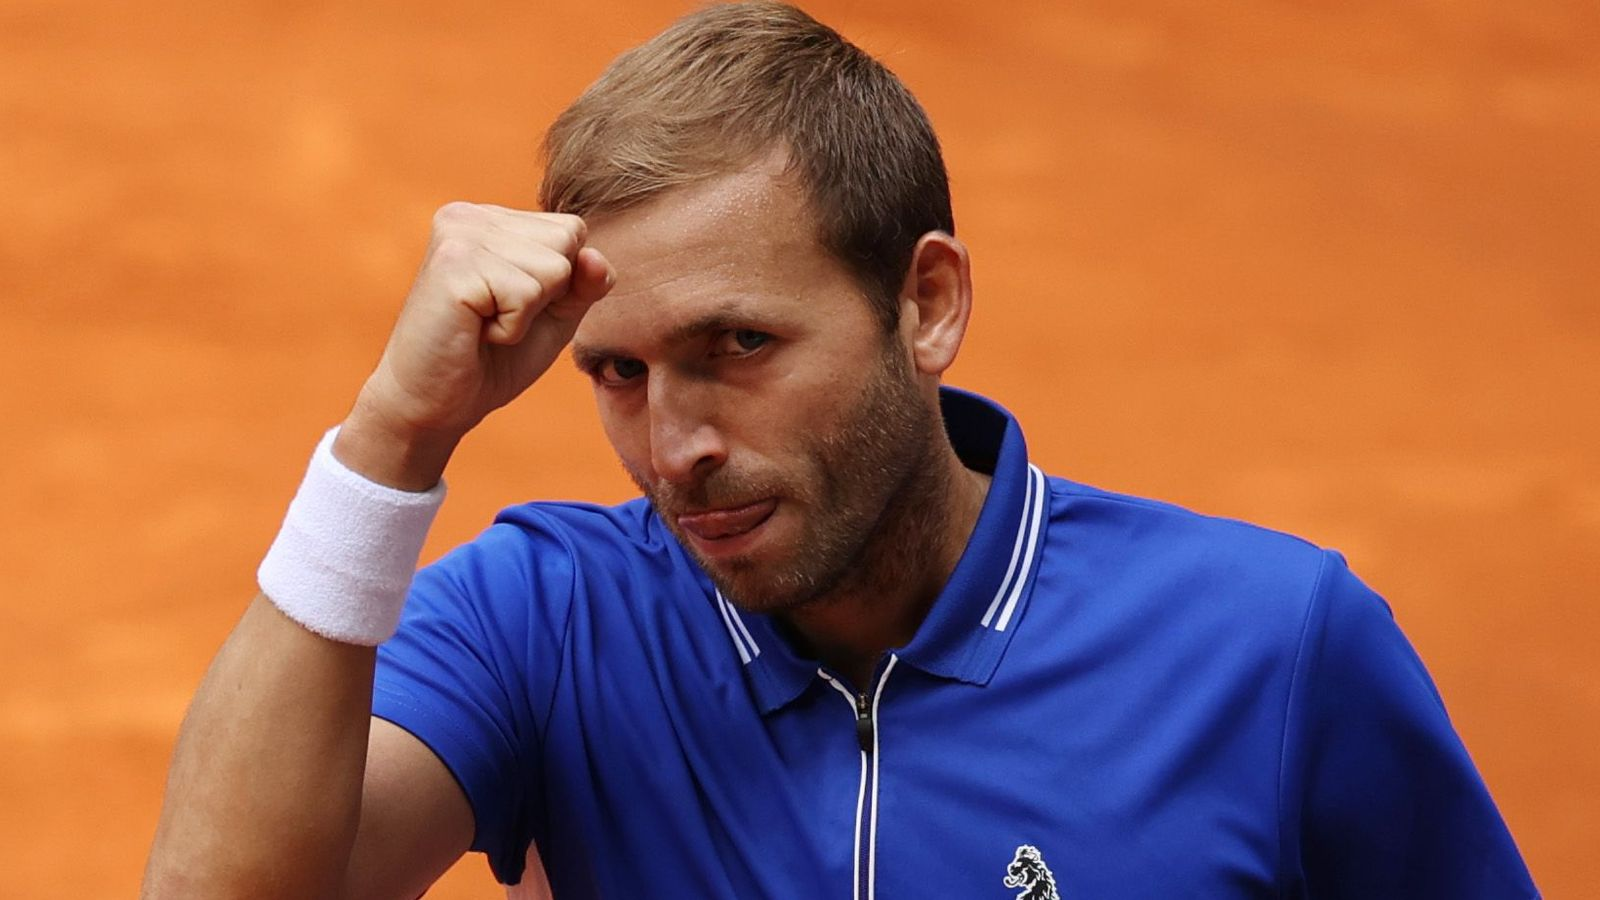 Madrid Open: Dan Evans beats Jeremy Chardy to make winning start to his campaign in the Spanish capital